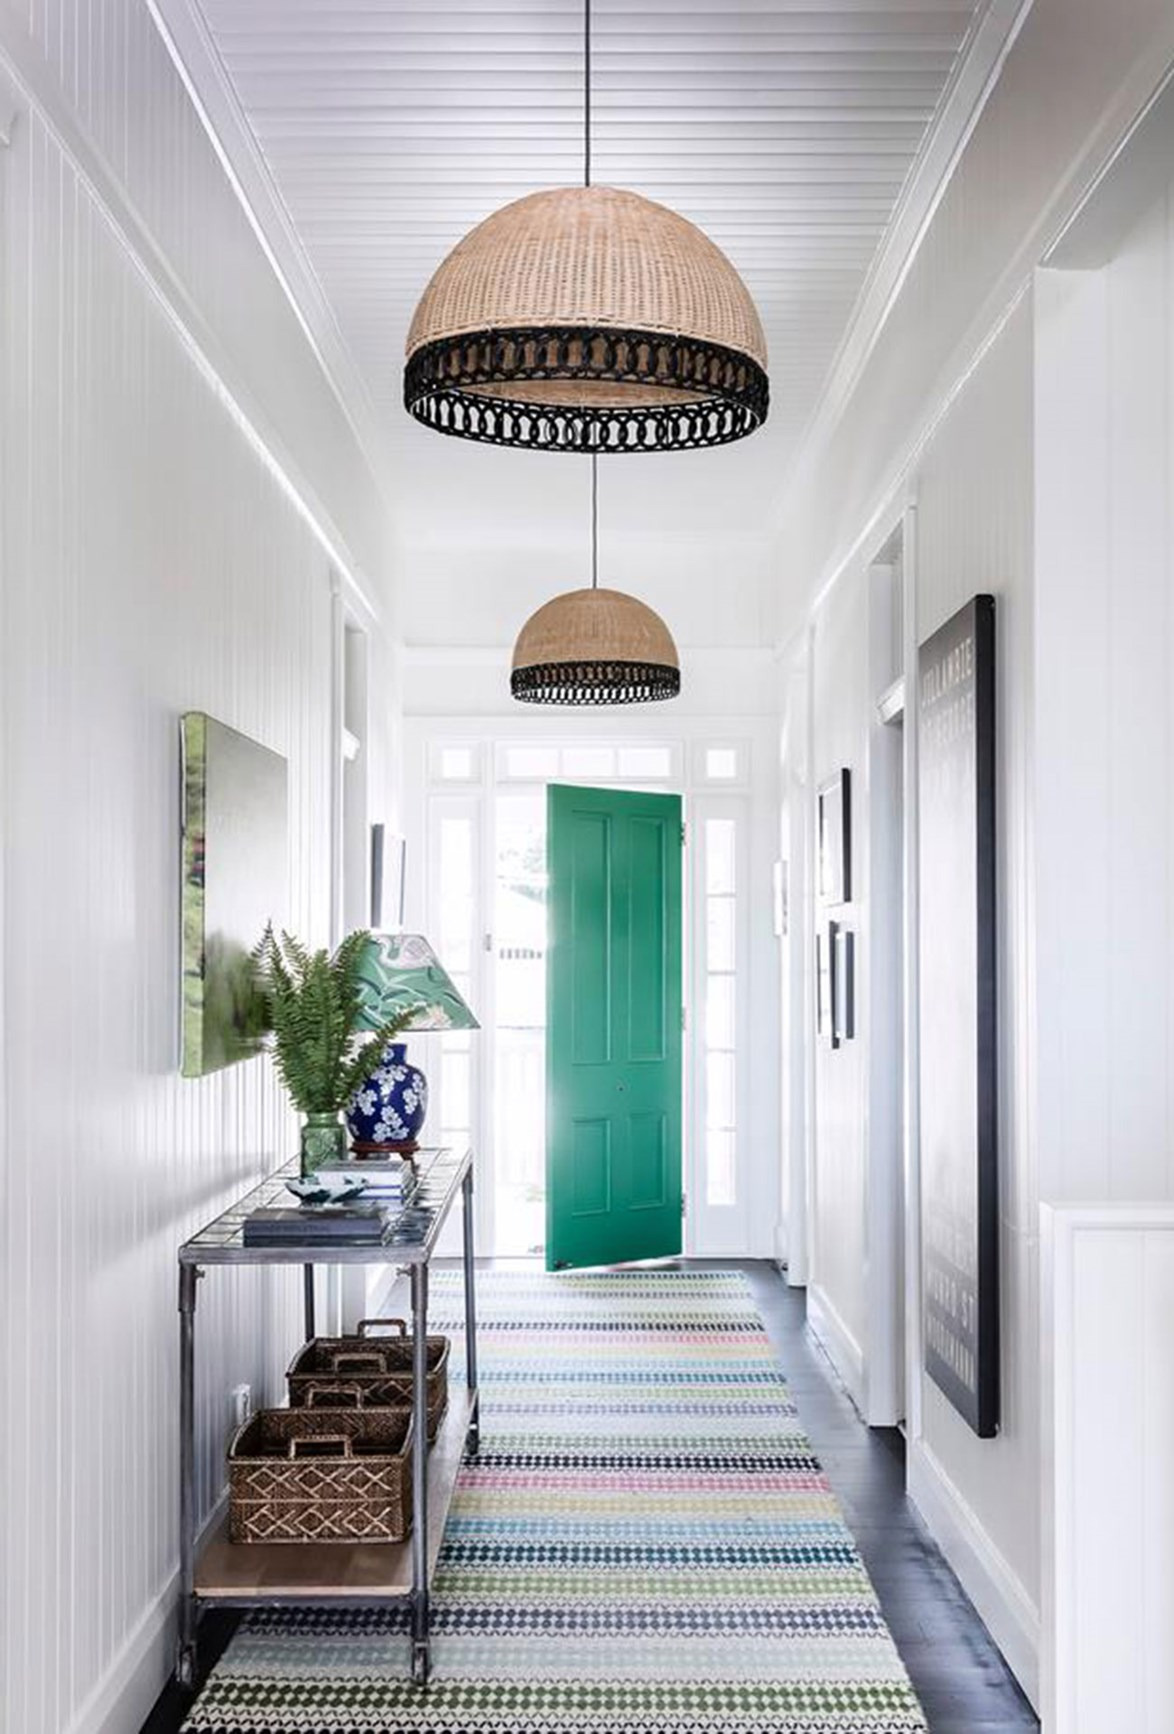 """An emerald coloured door hints at the interior scheme inside this [Queenslander home](https://www.homestolove.com.au/queenslander-renovation-and-extension-5965